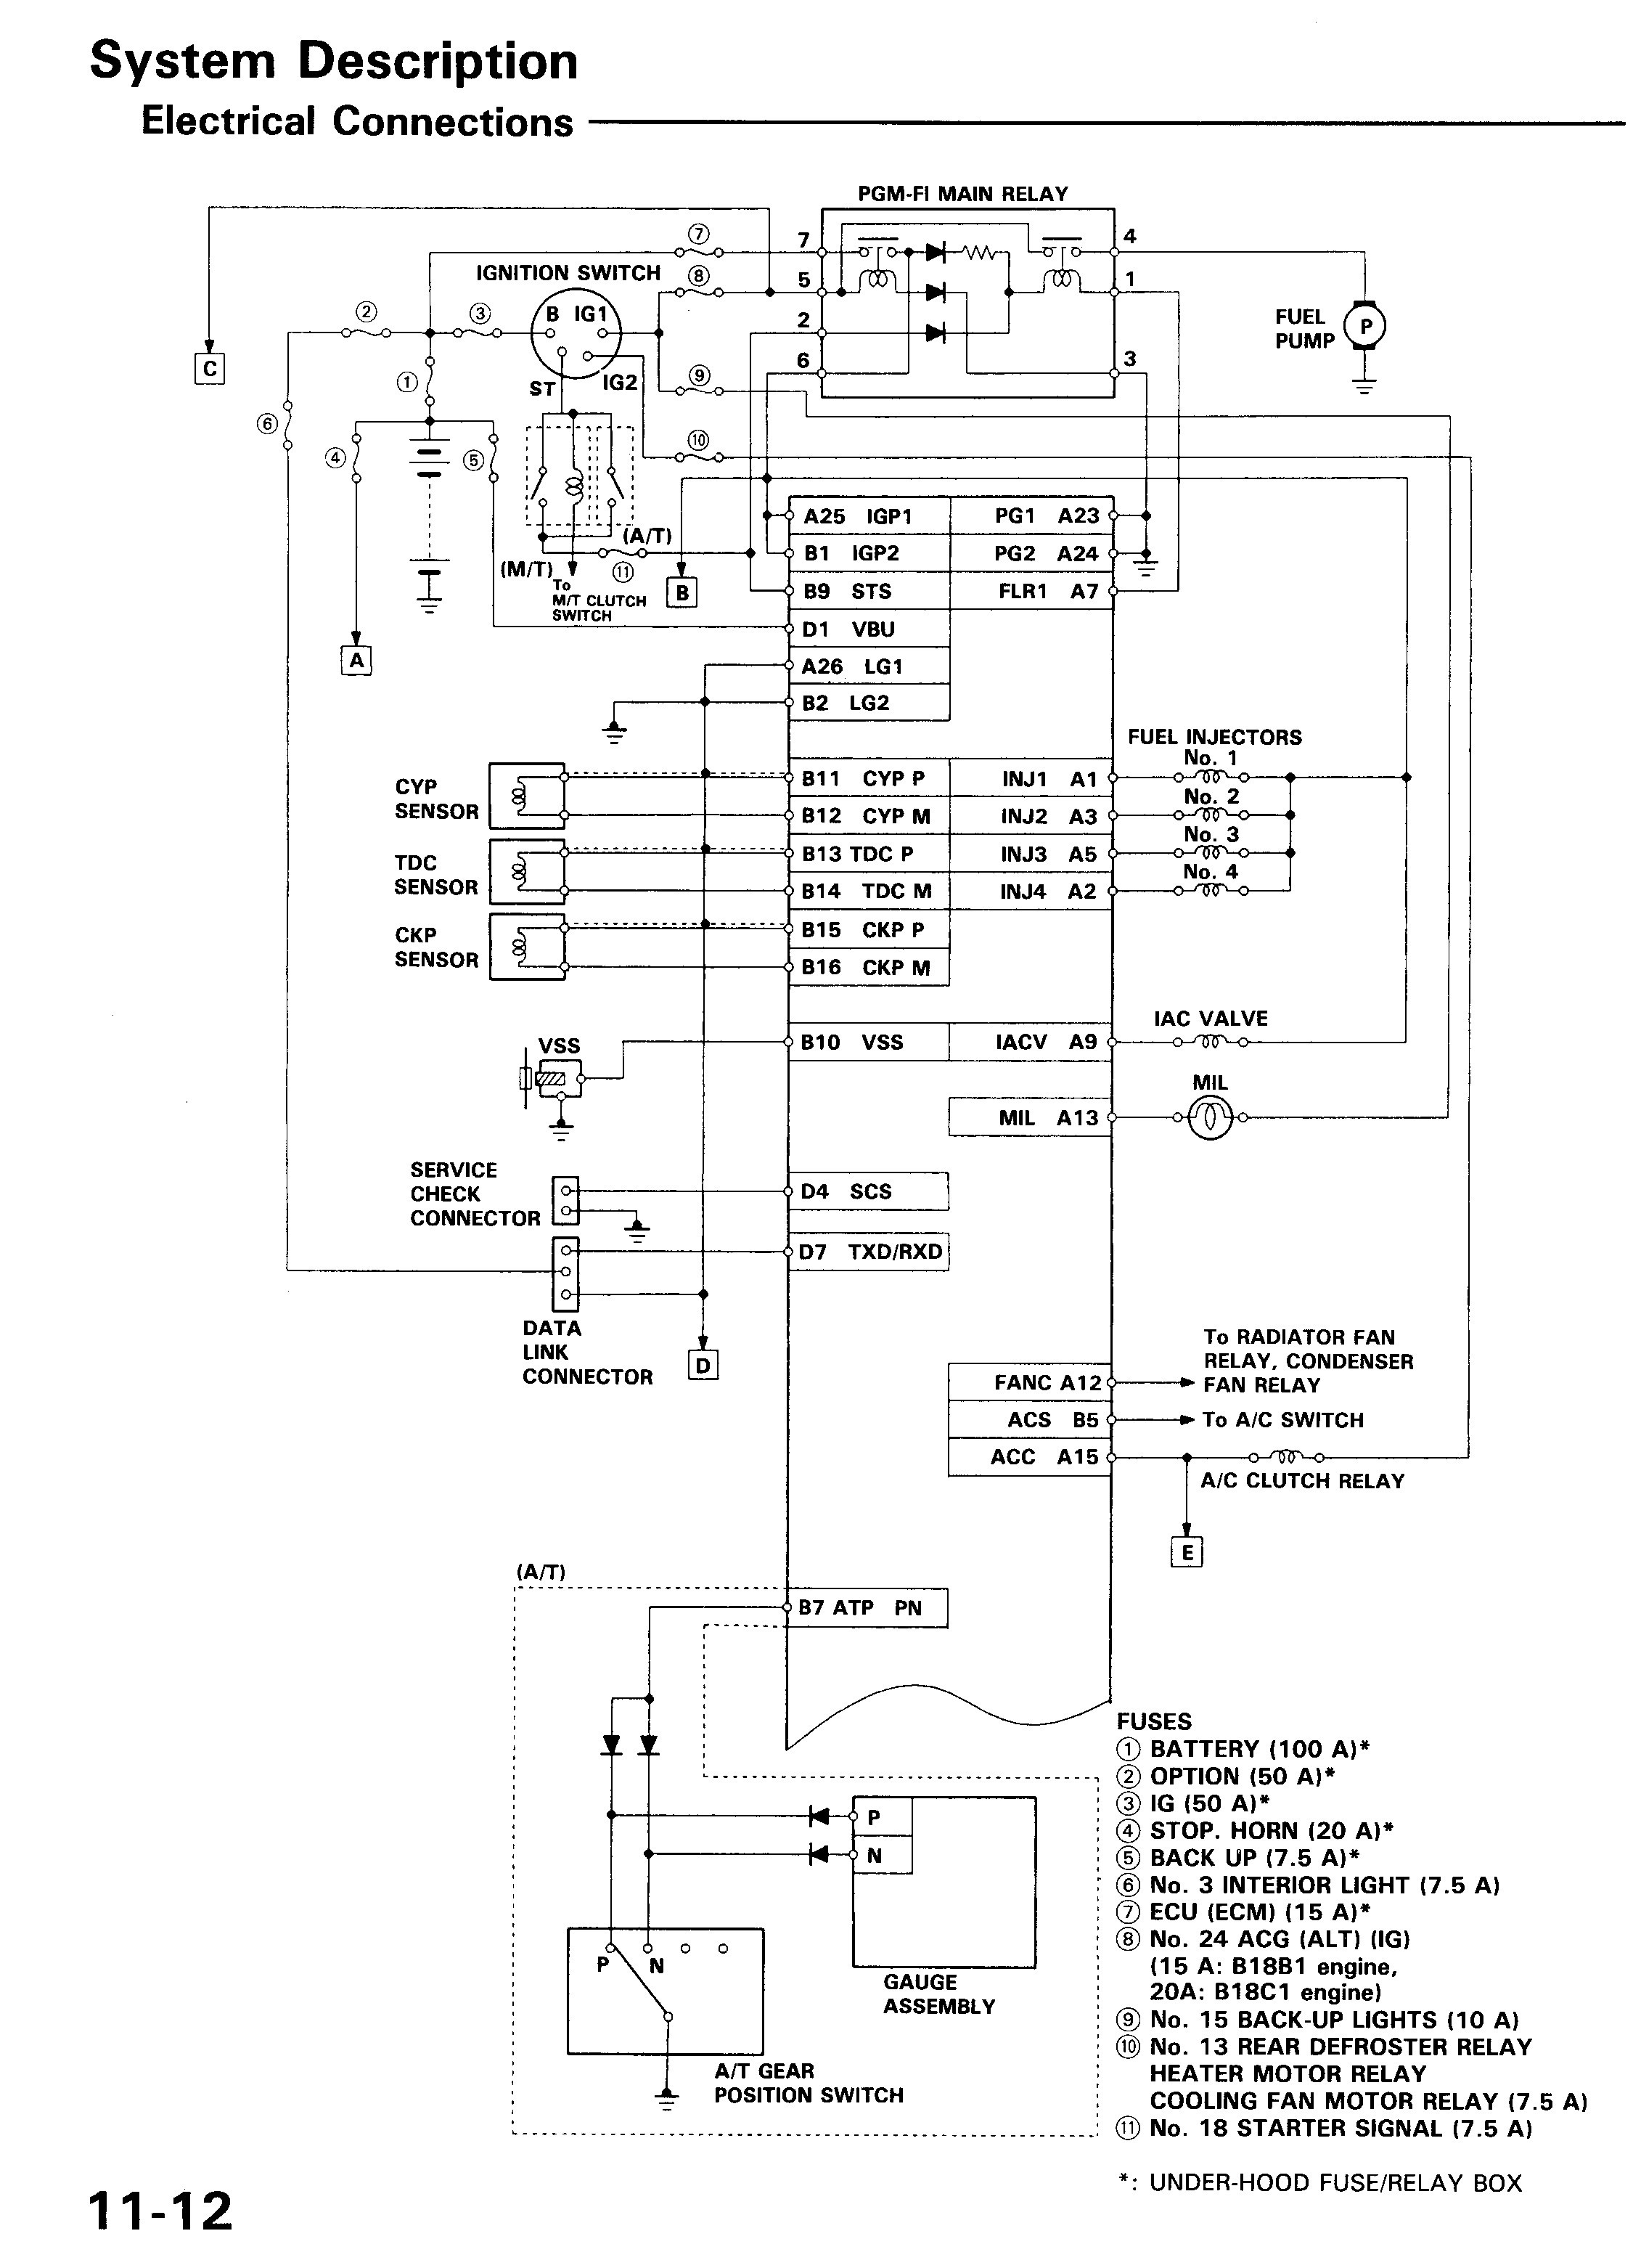 1991 Honda Accord Wiring Diagram Cb 900 1994 Wire With Of